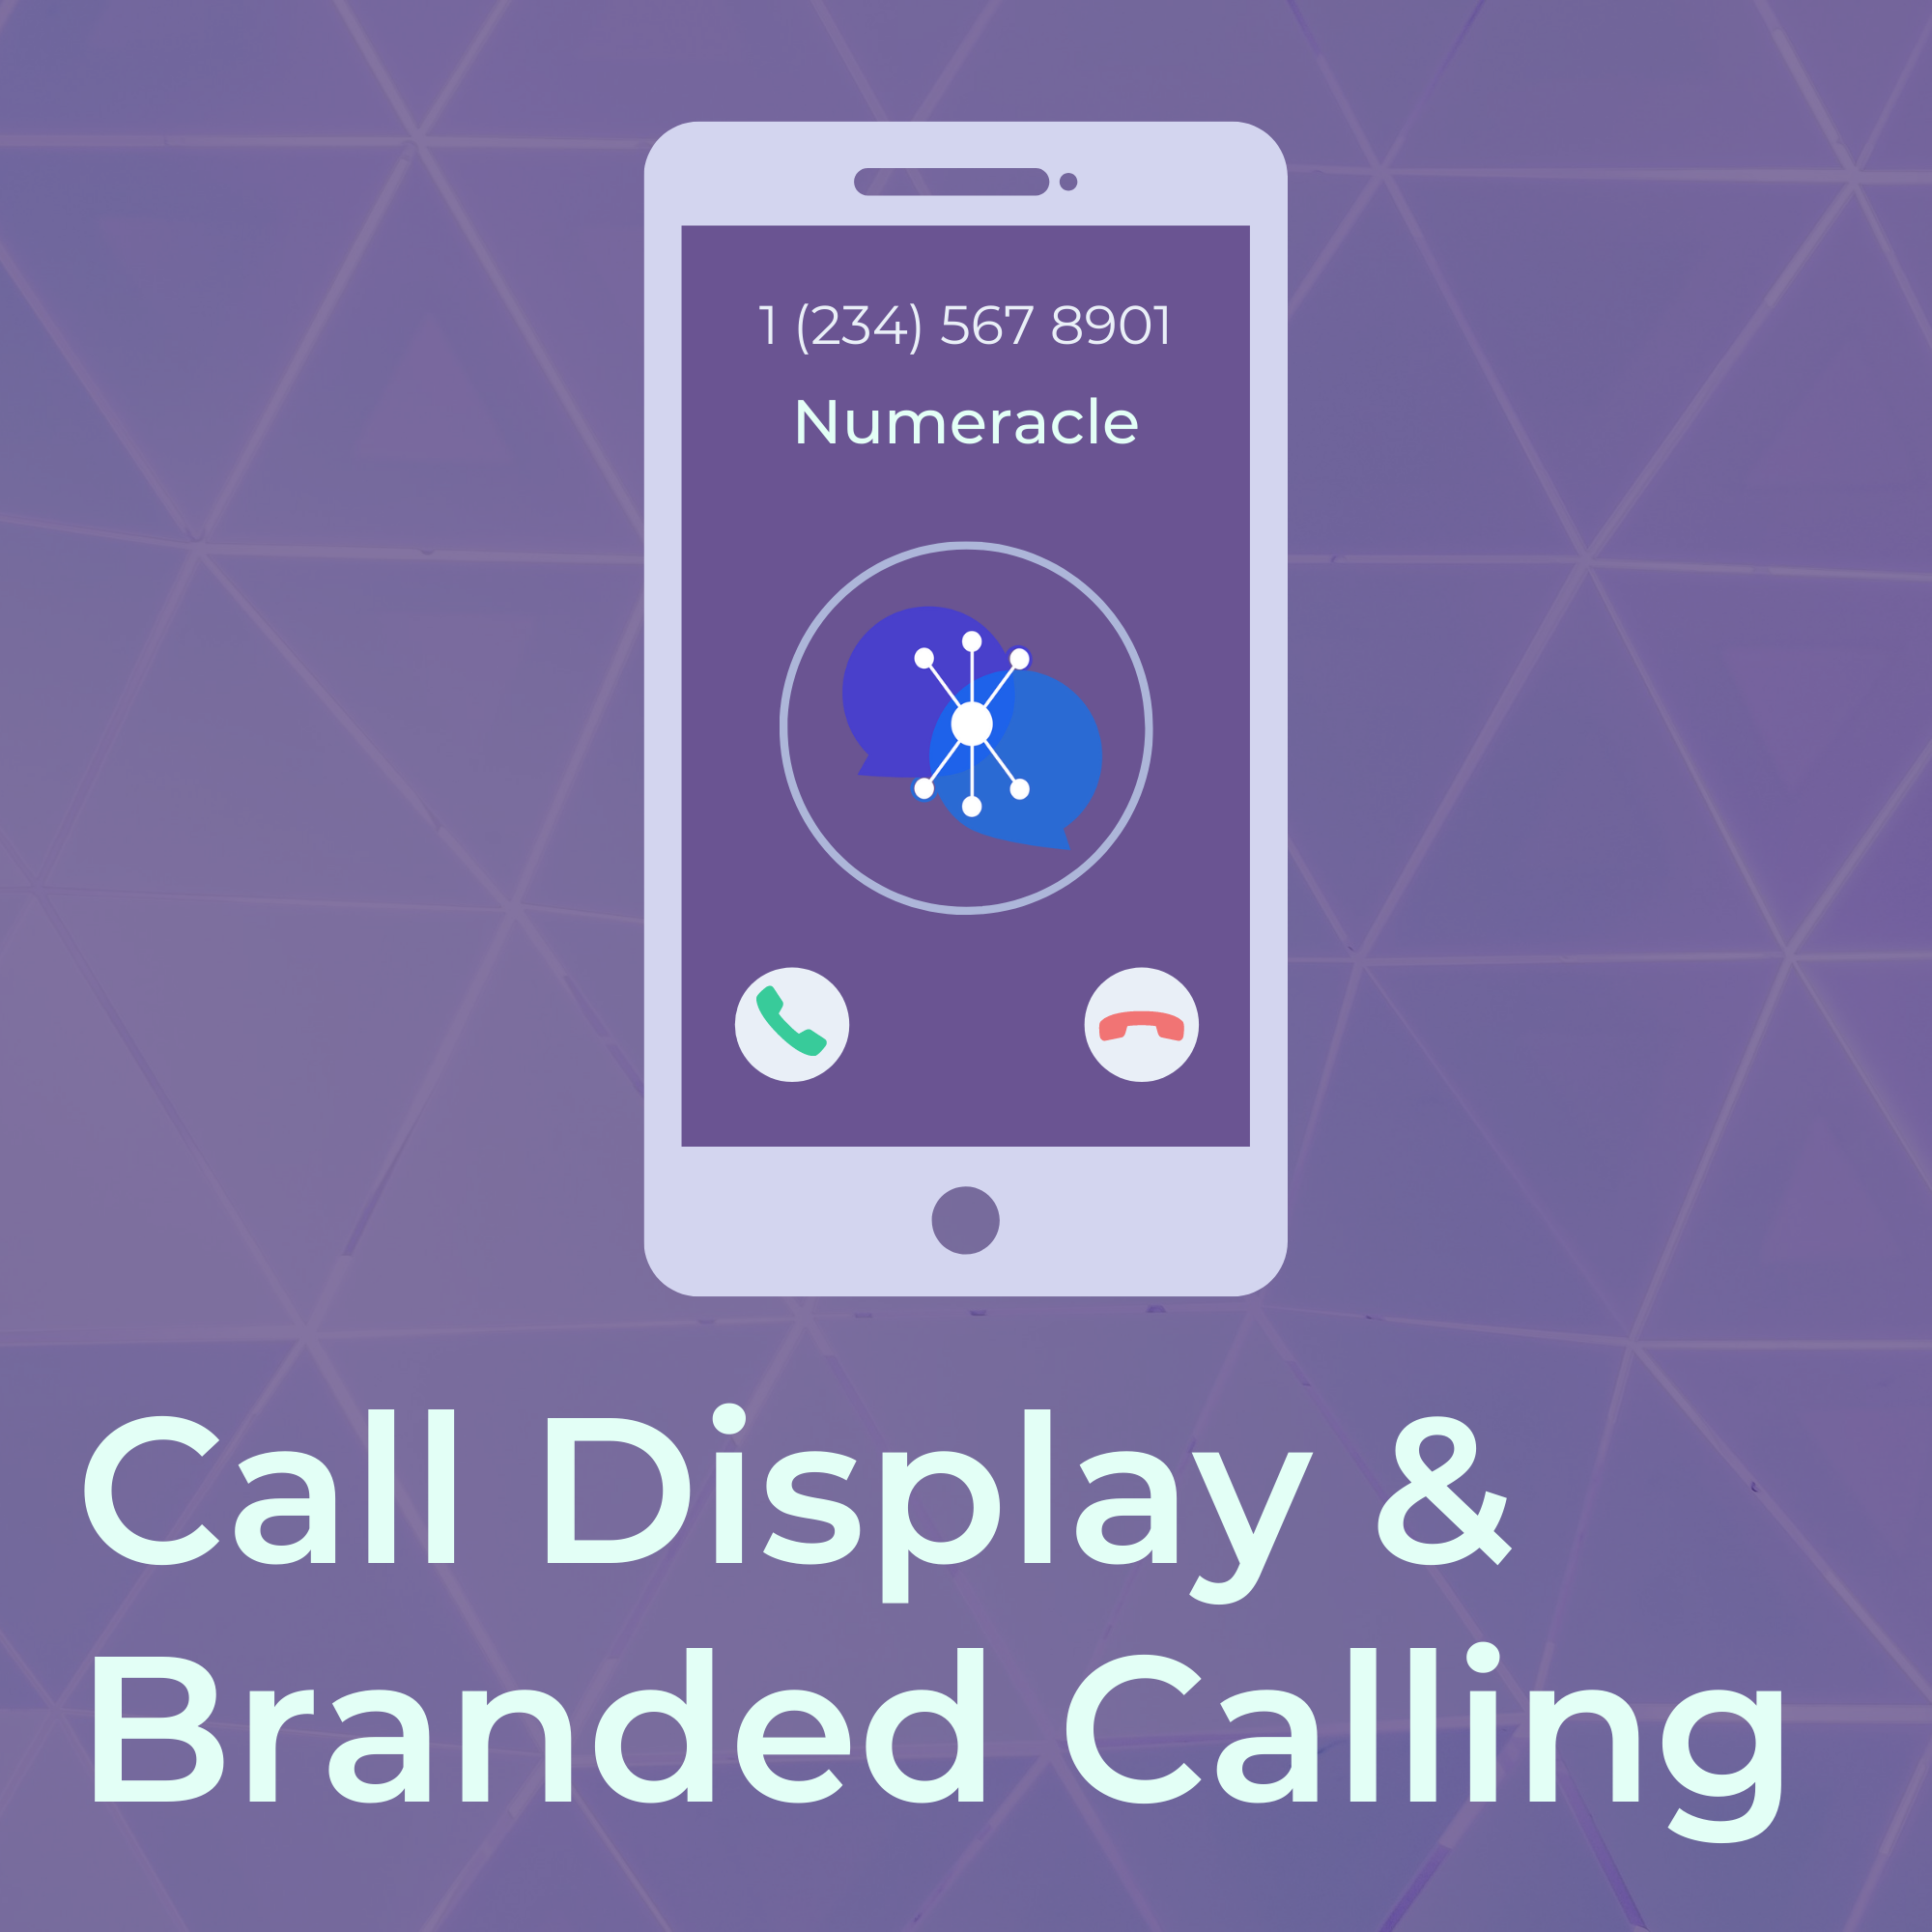 Tuesday Talks Collection - Call Display & Branded Calling